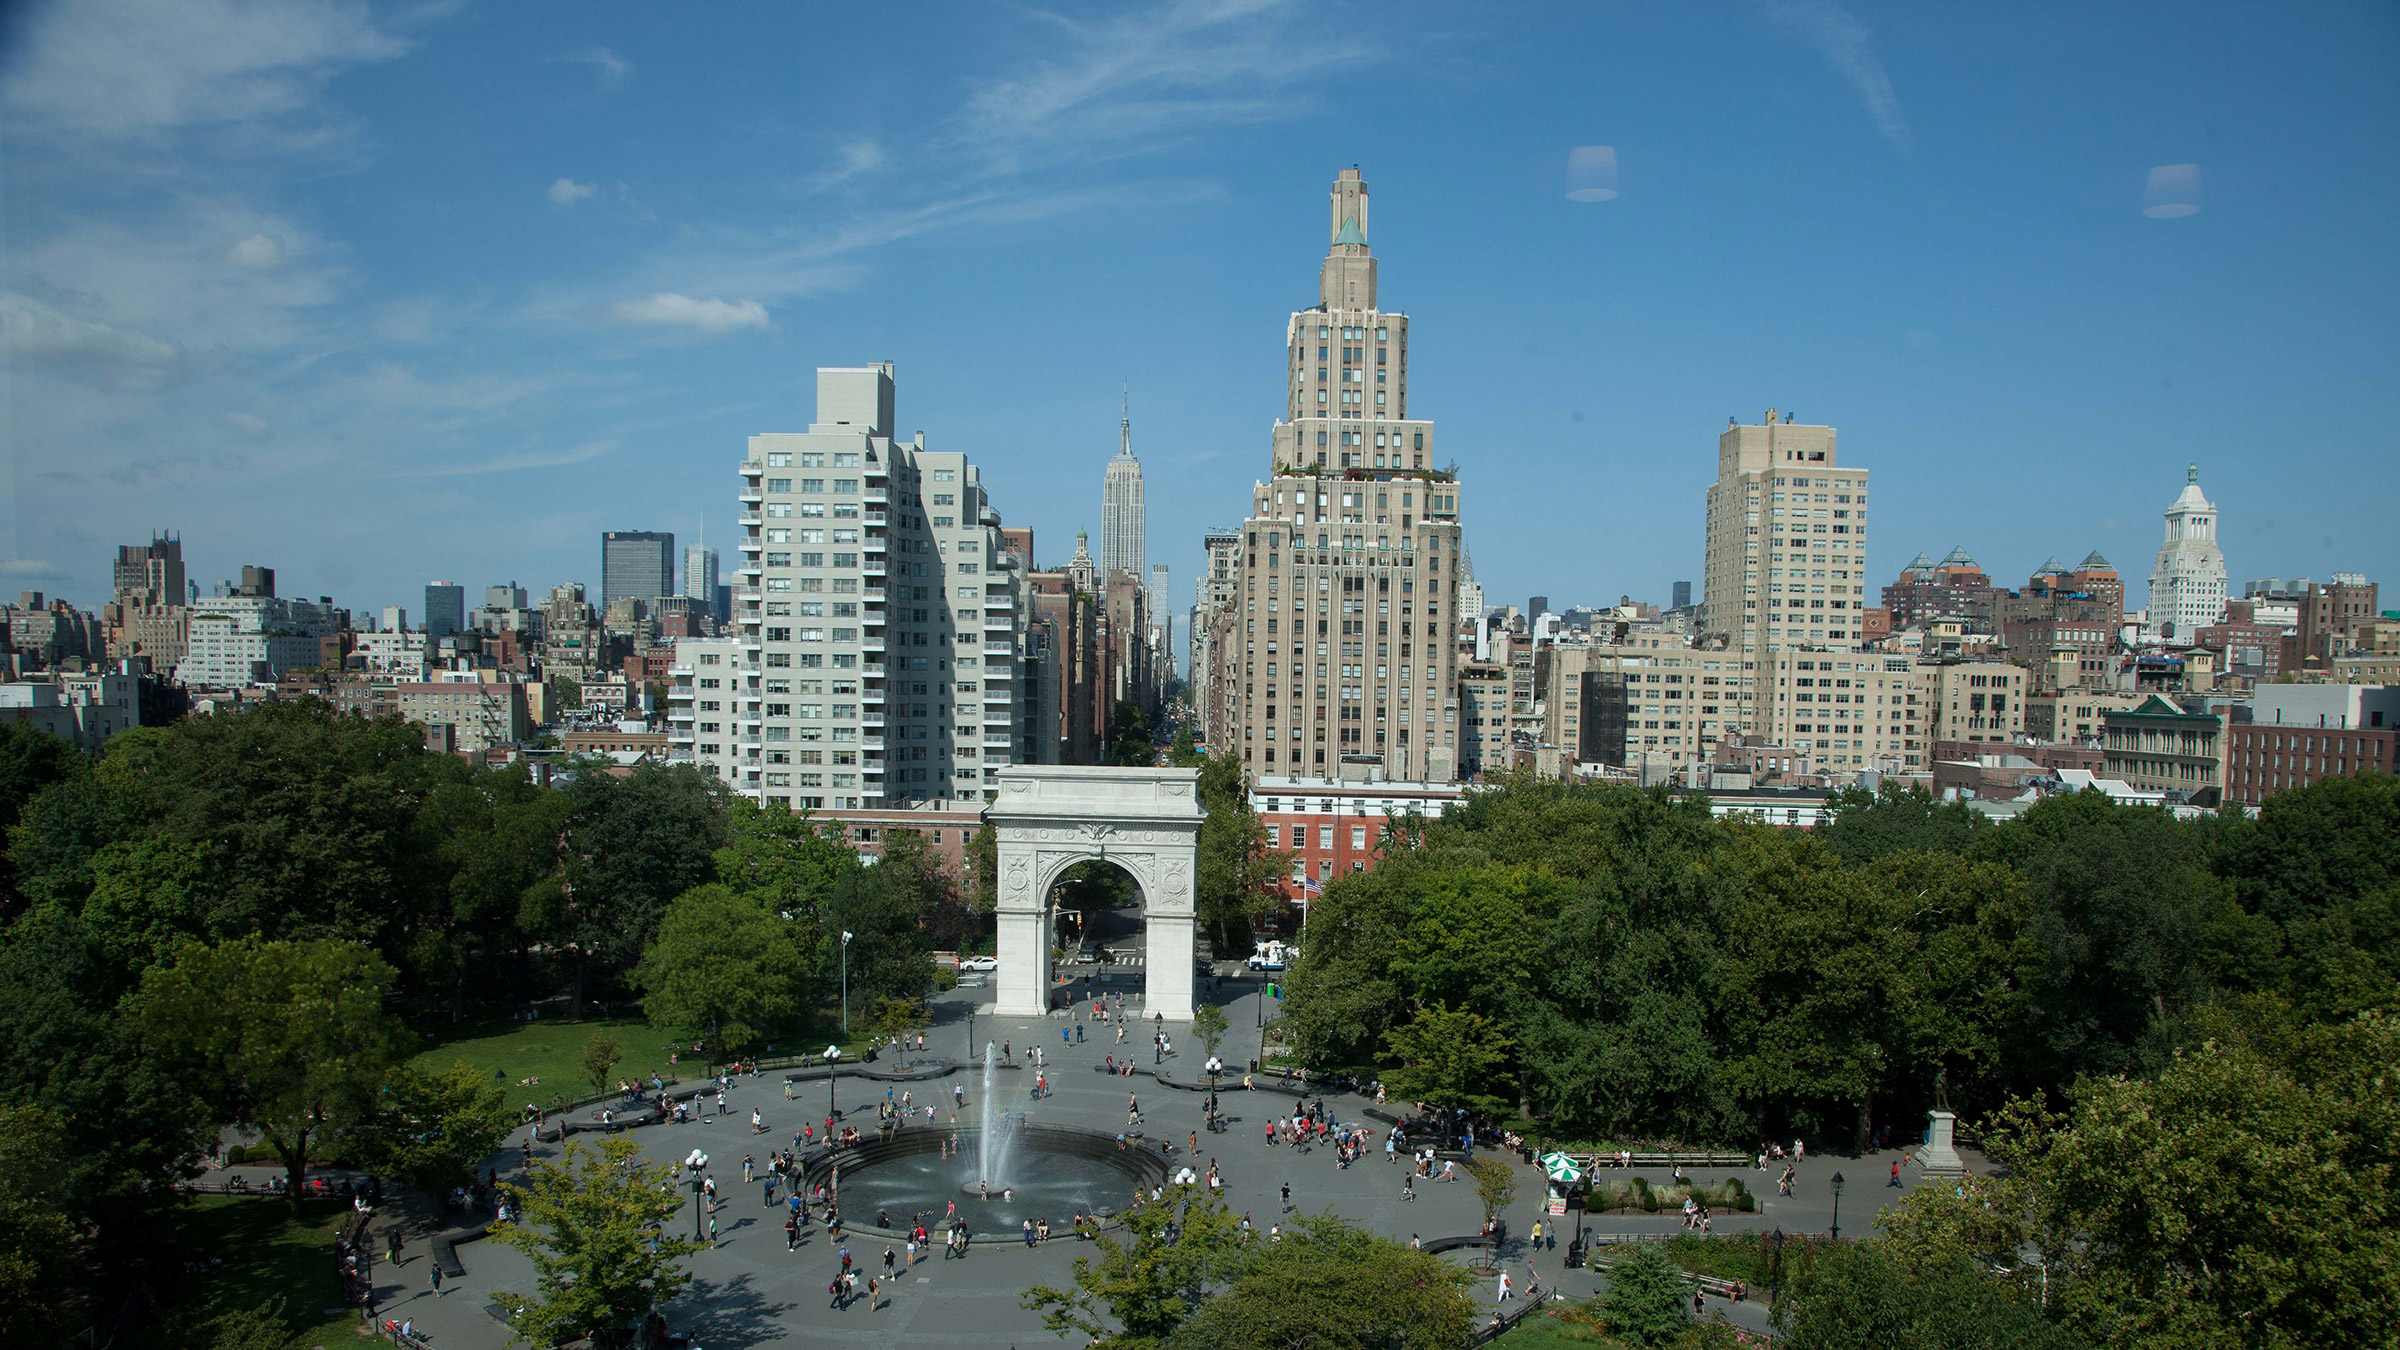 Washington Square Park from aerial view